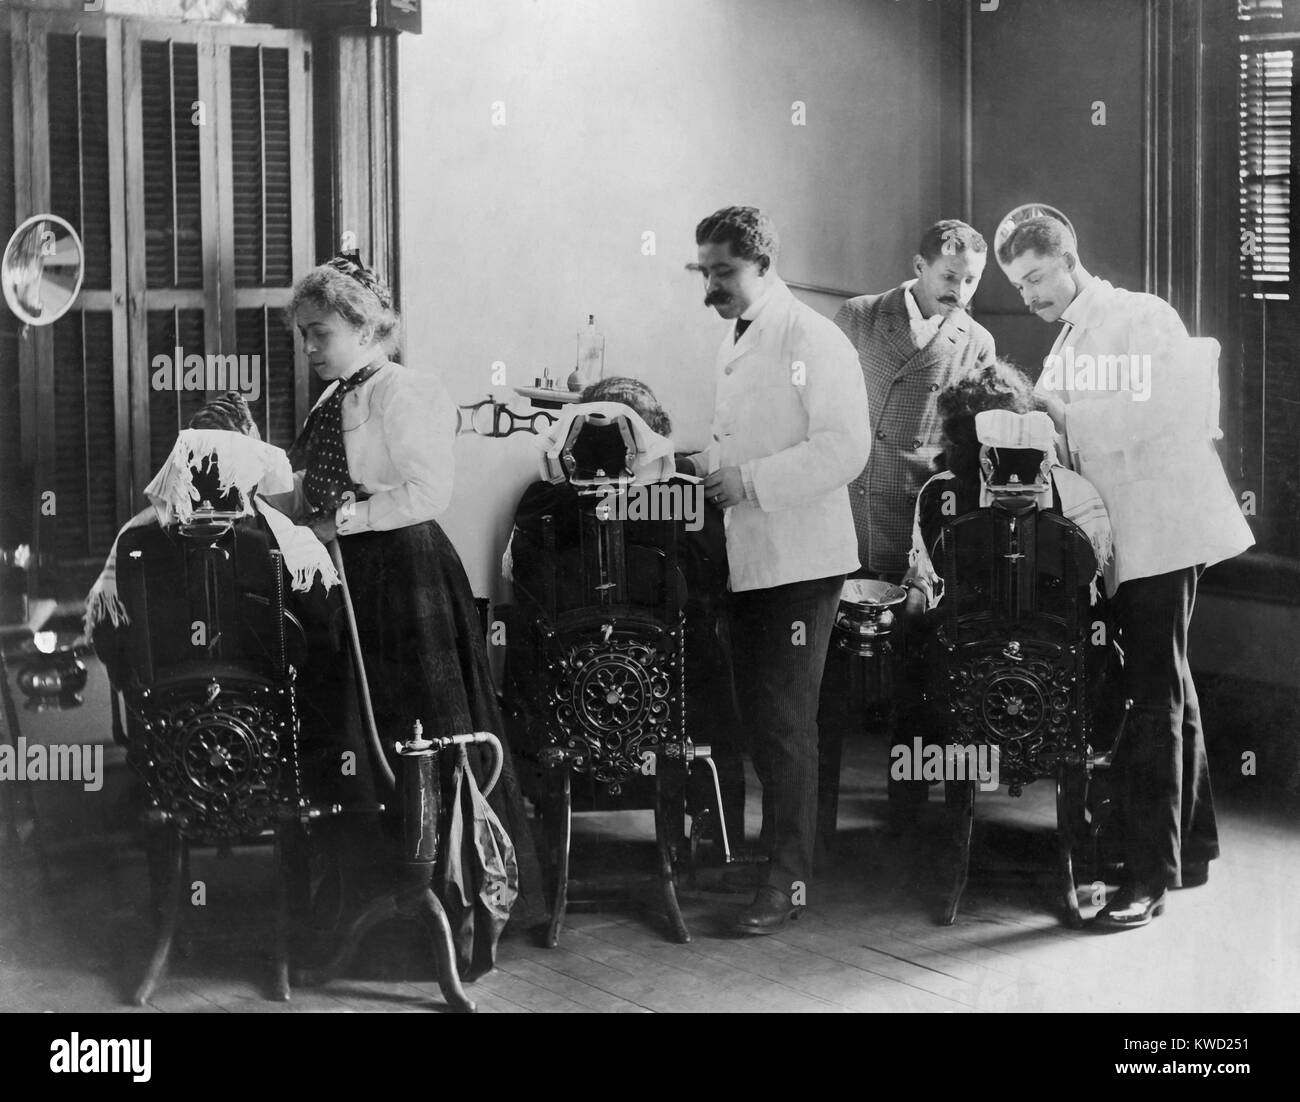 African American dentistry students practicing at Howard University, 1900. Howard was chartered by Congress in 1867 - Stock Image